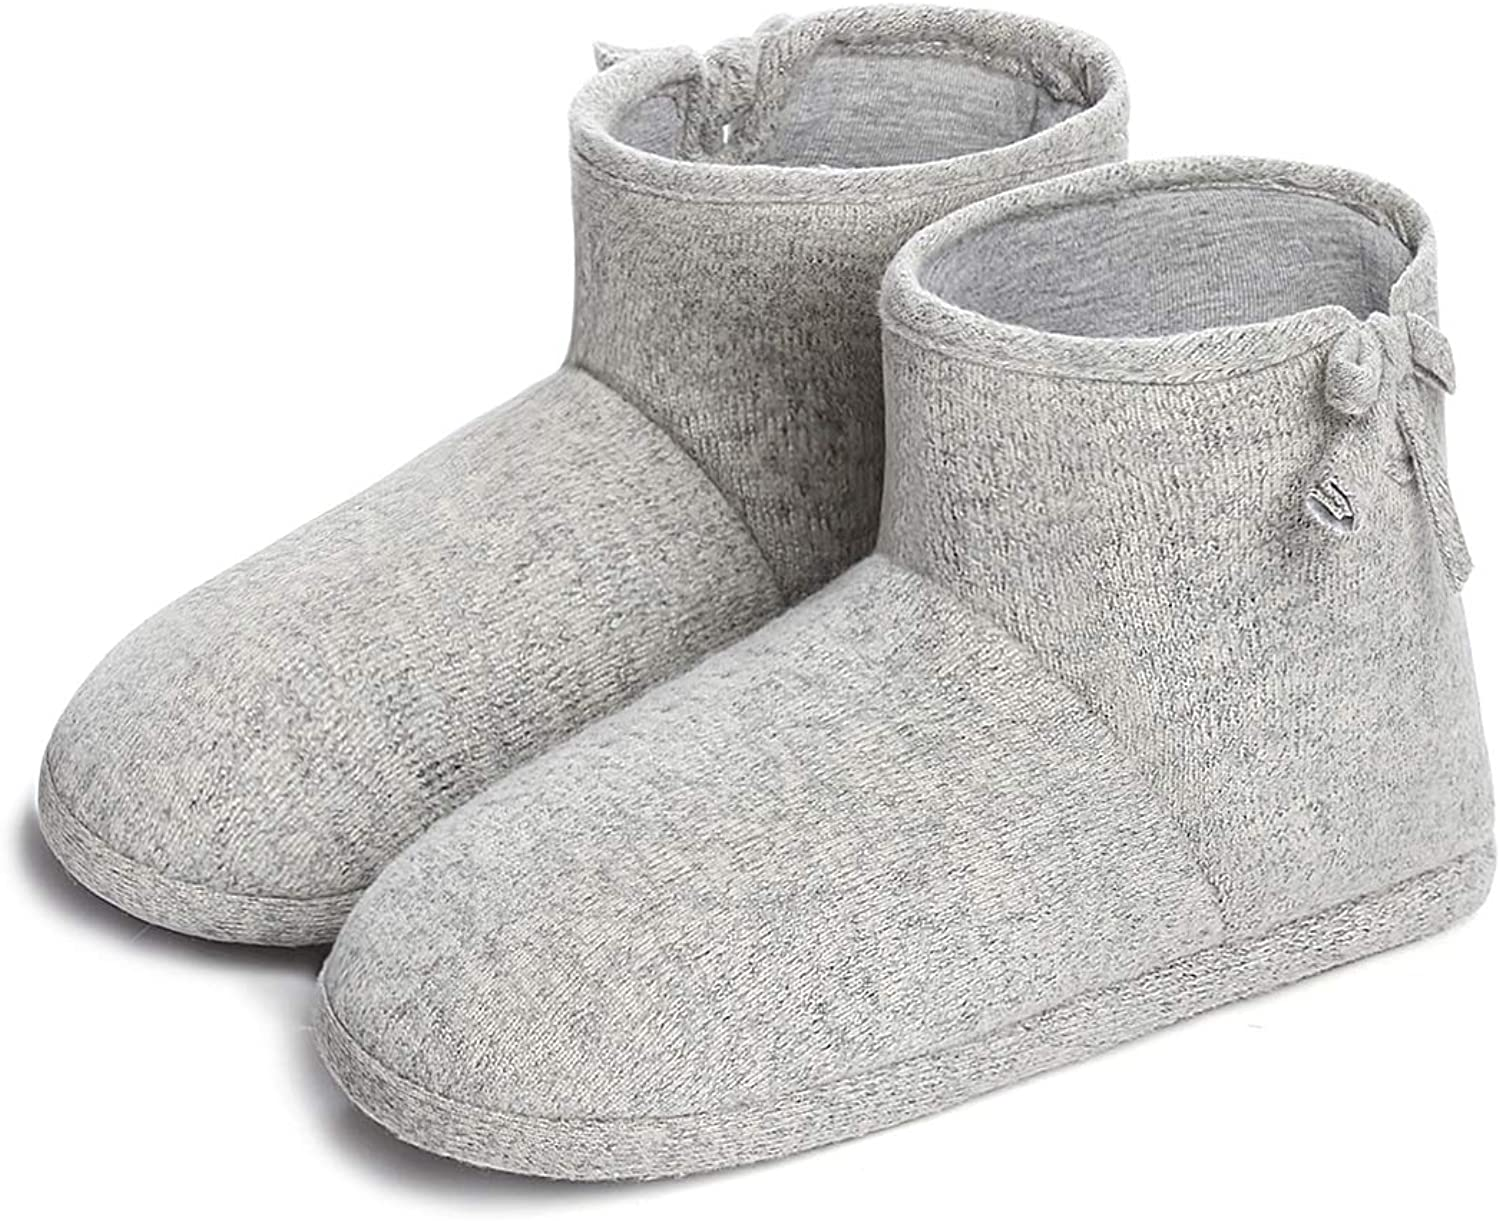 Dailybella Women's Indoor Slippers Boot Winter Soft Cotton Memory Foam House shoes